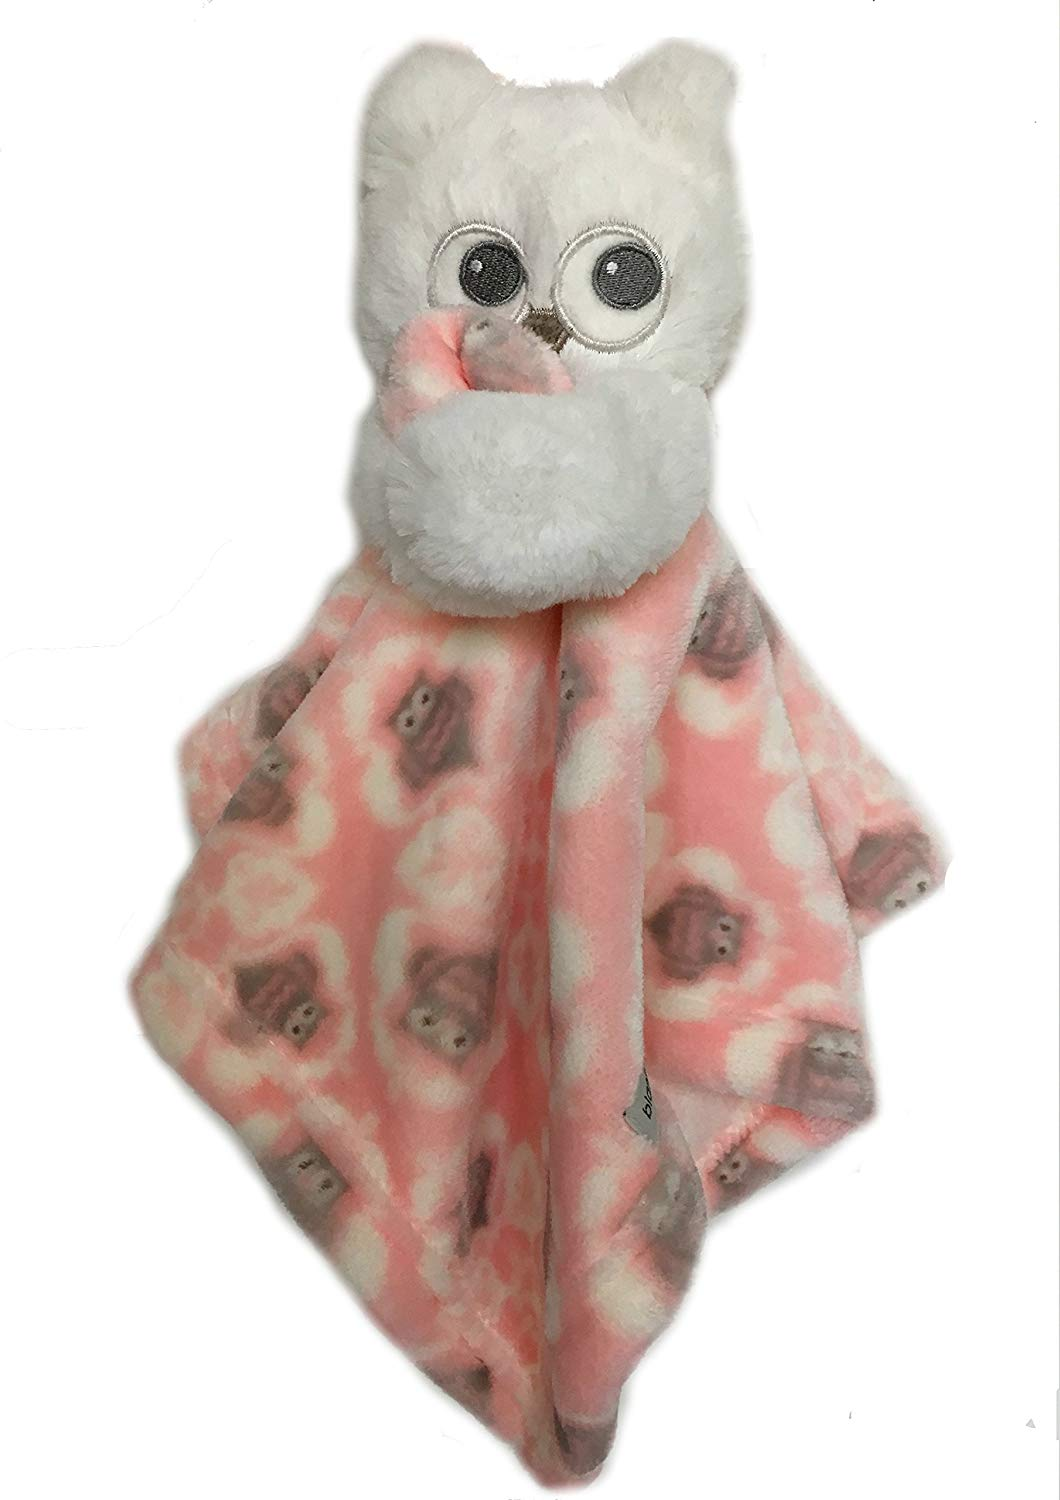 Blankets and Beyond Pink and White Owl Security Blanket Nunu Lovey-baby blankets, security blankets, baby shower gifts, lovies, lovie, lovey, nunu